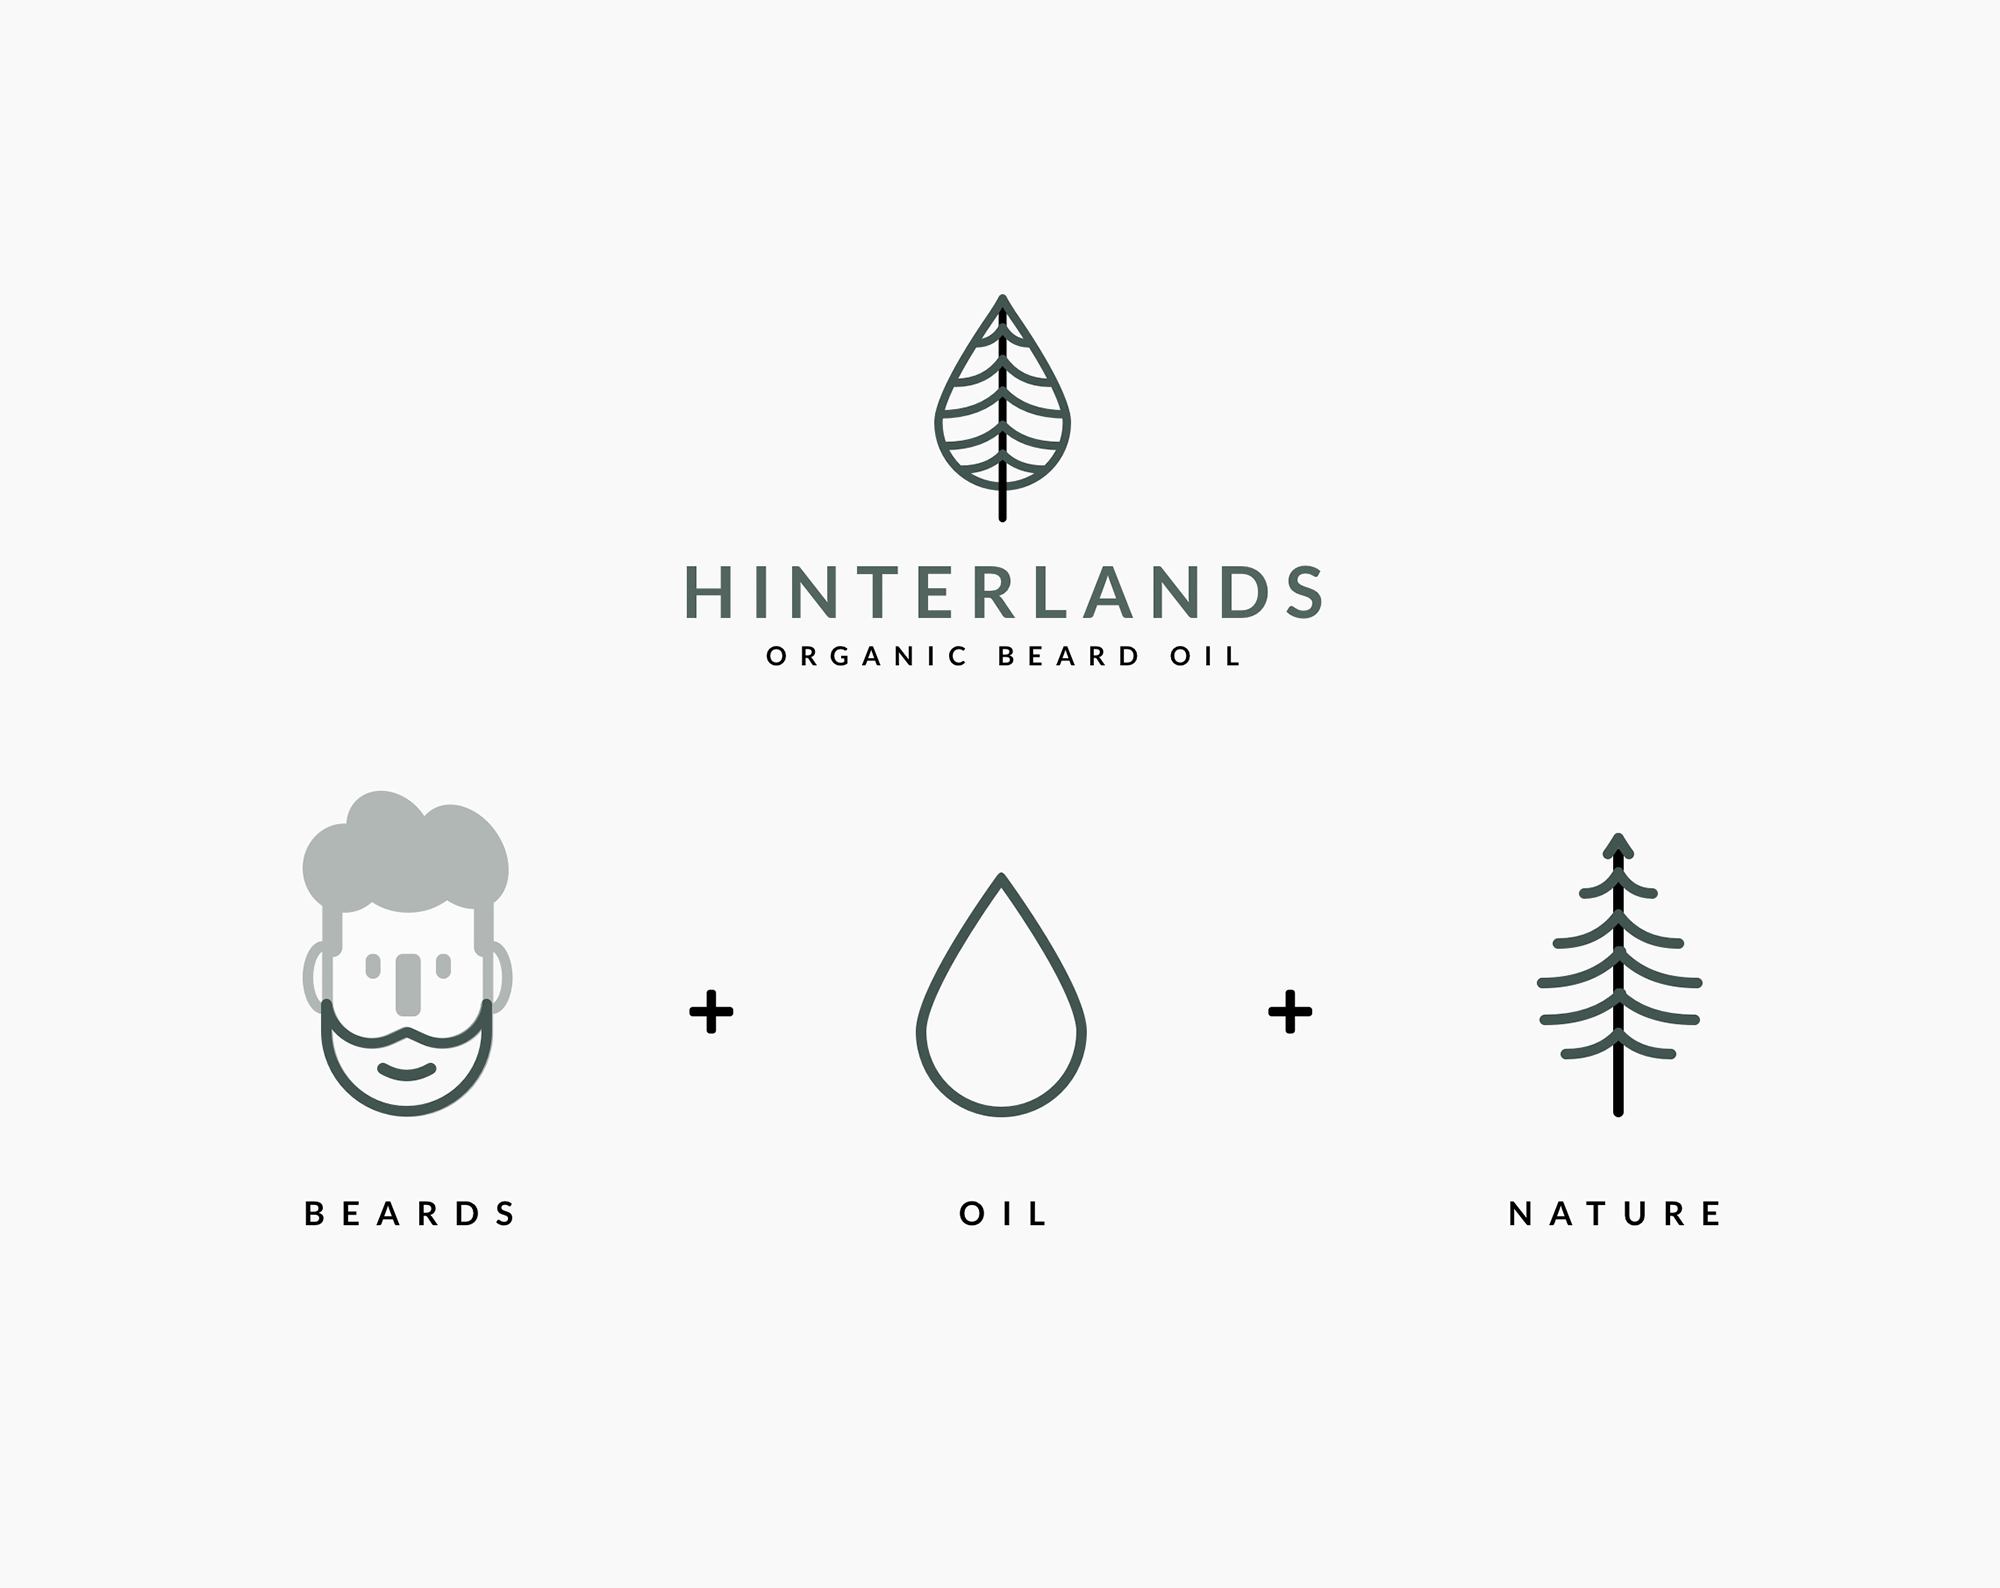 Beards Oil Nature Hinterlands